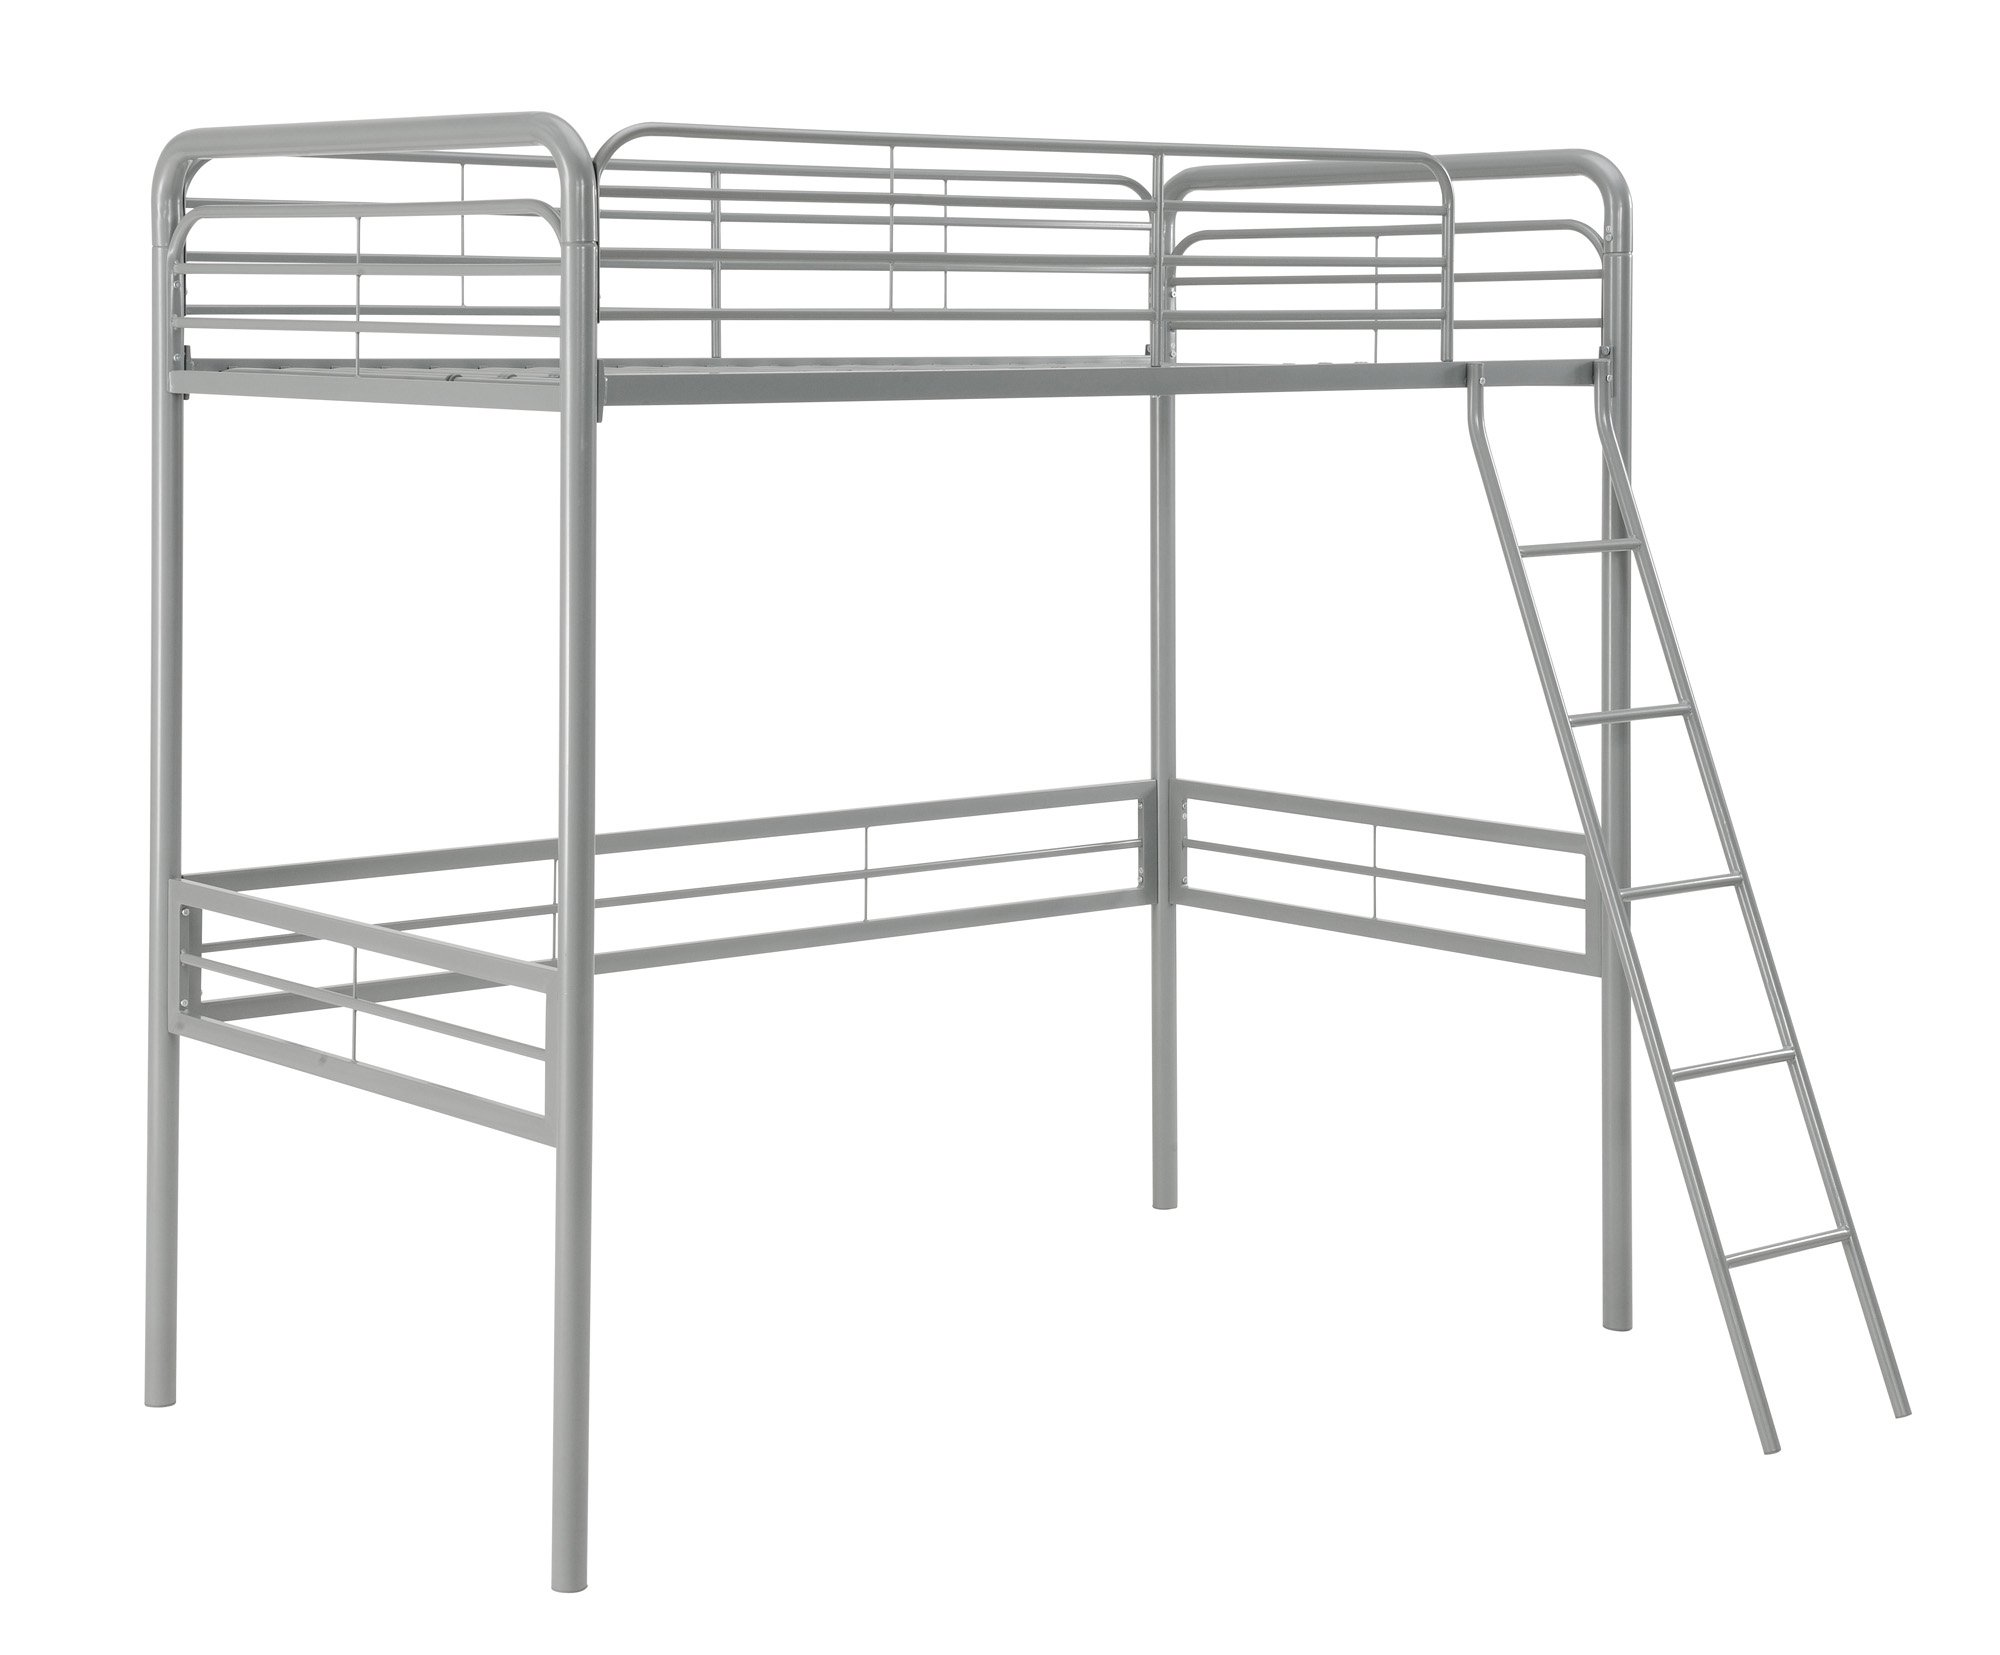 DHP Simple Metal Loft Bed Frame, Multifunctional, Twin Size, Silver